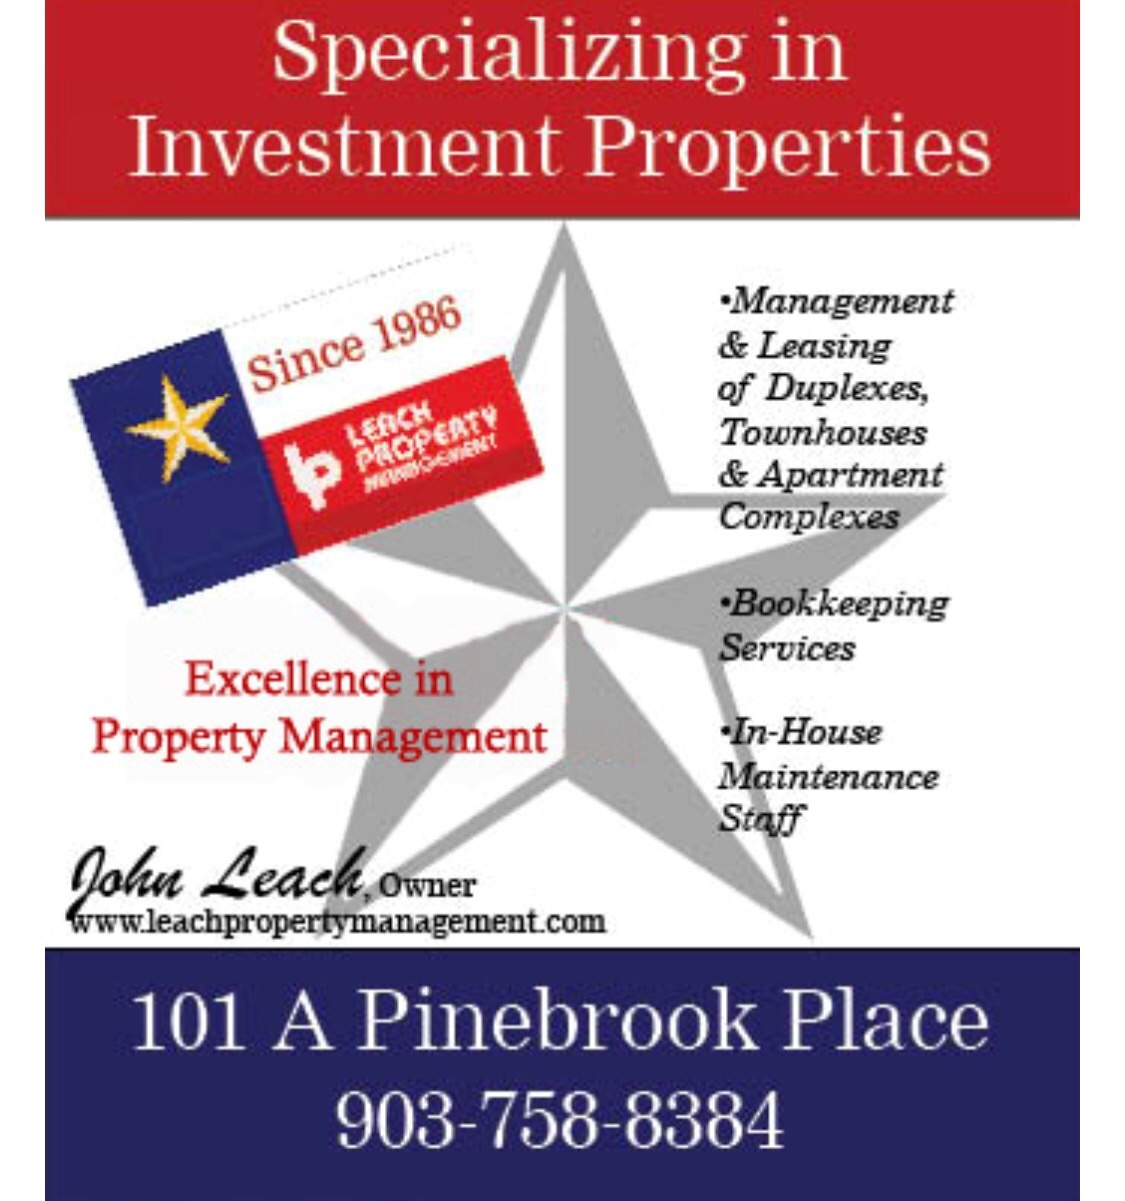 Leach Property Management In Longview Tx 75601